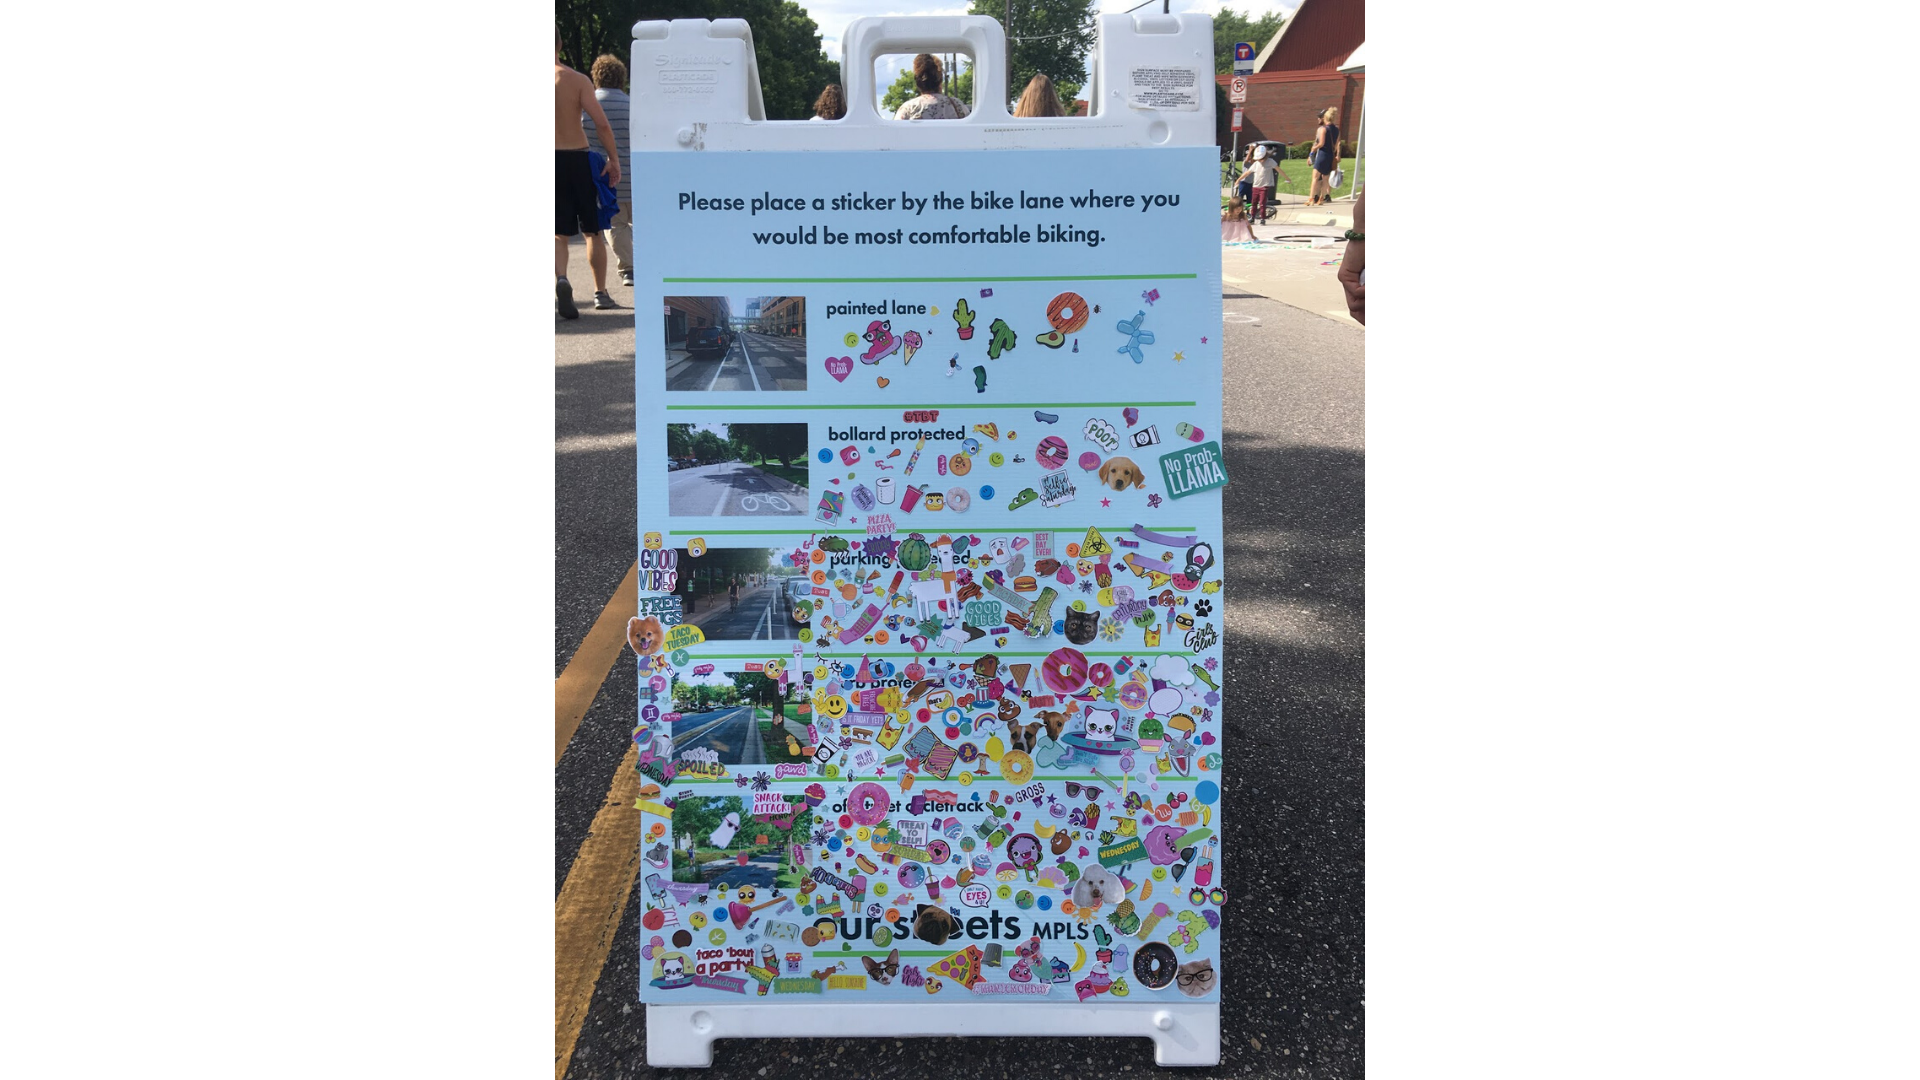 Engagement board with stickers by different types of bike infrastructure